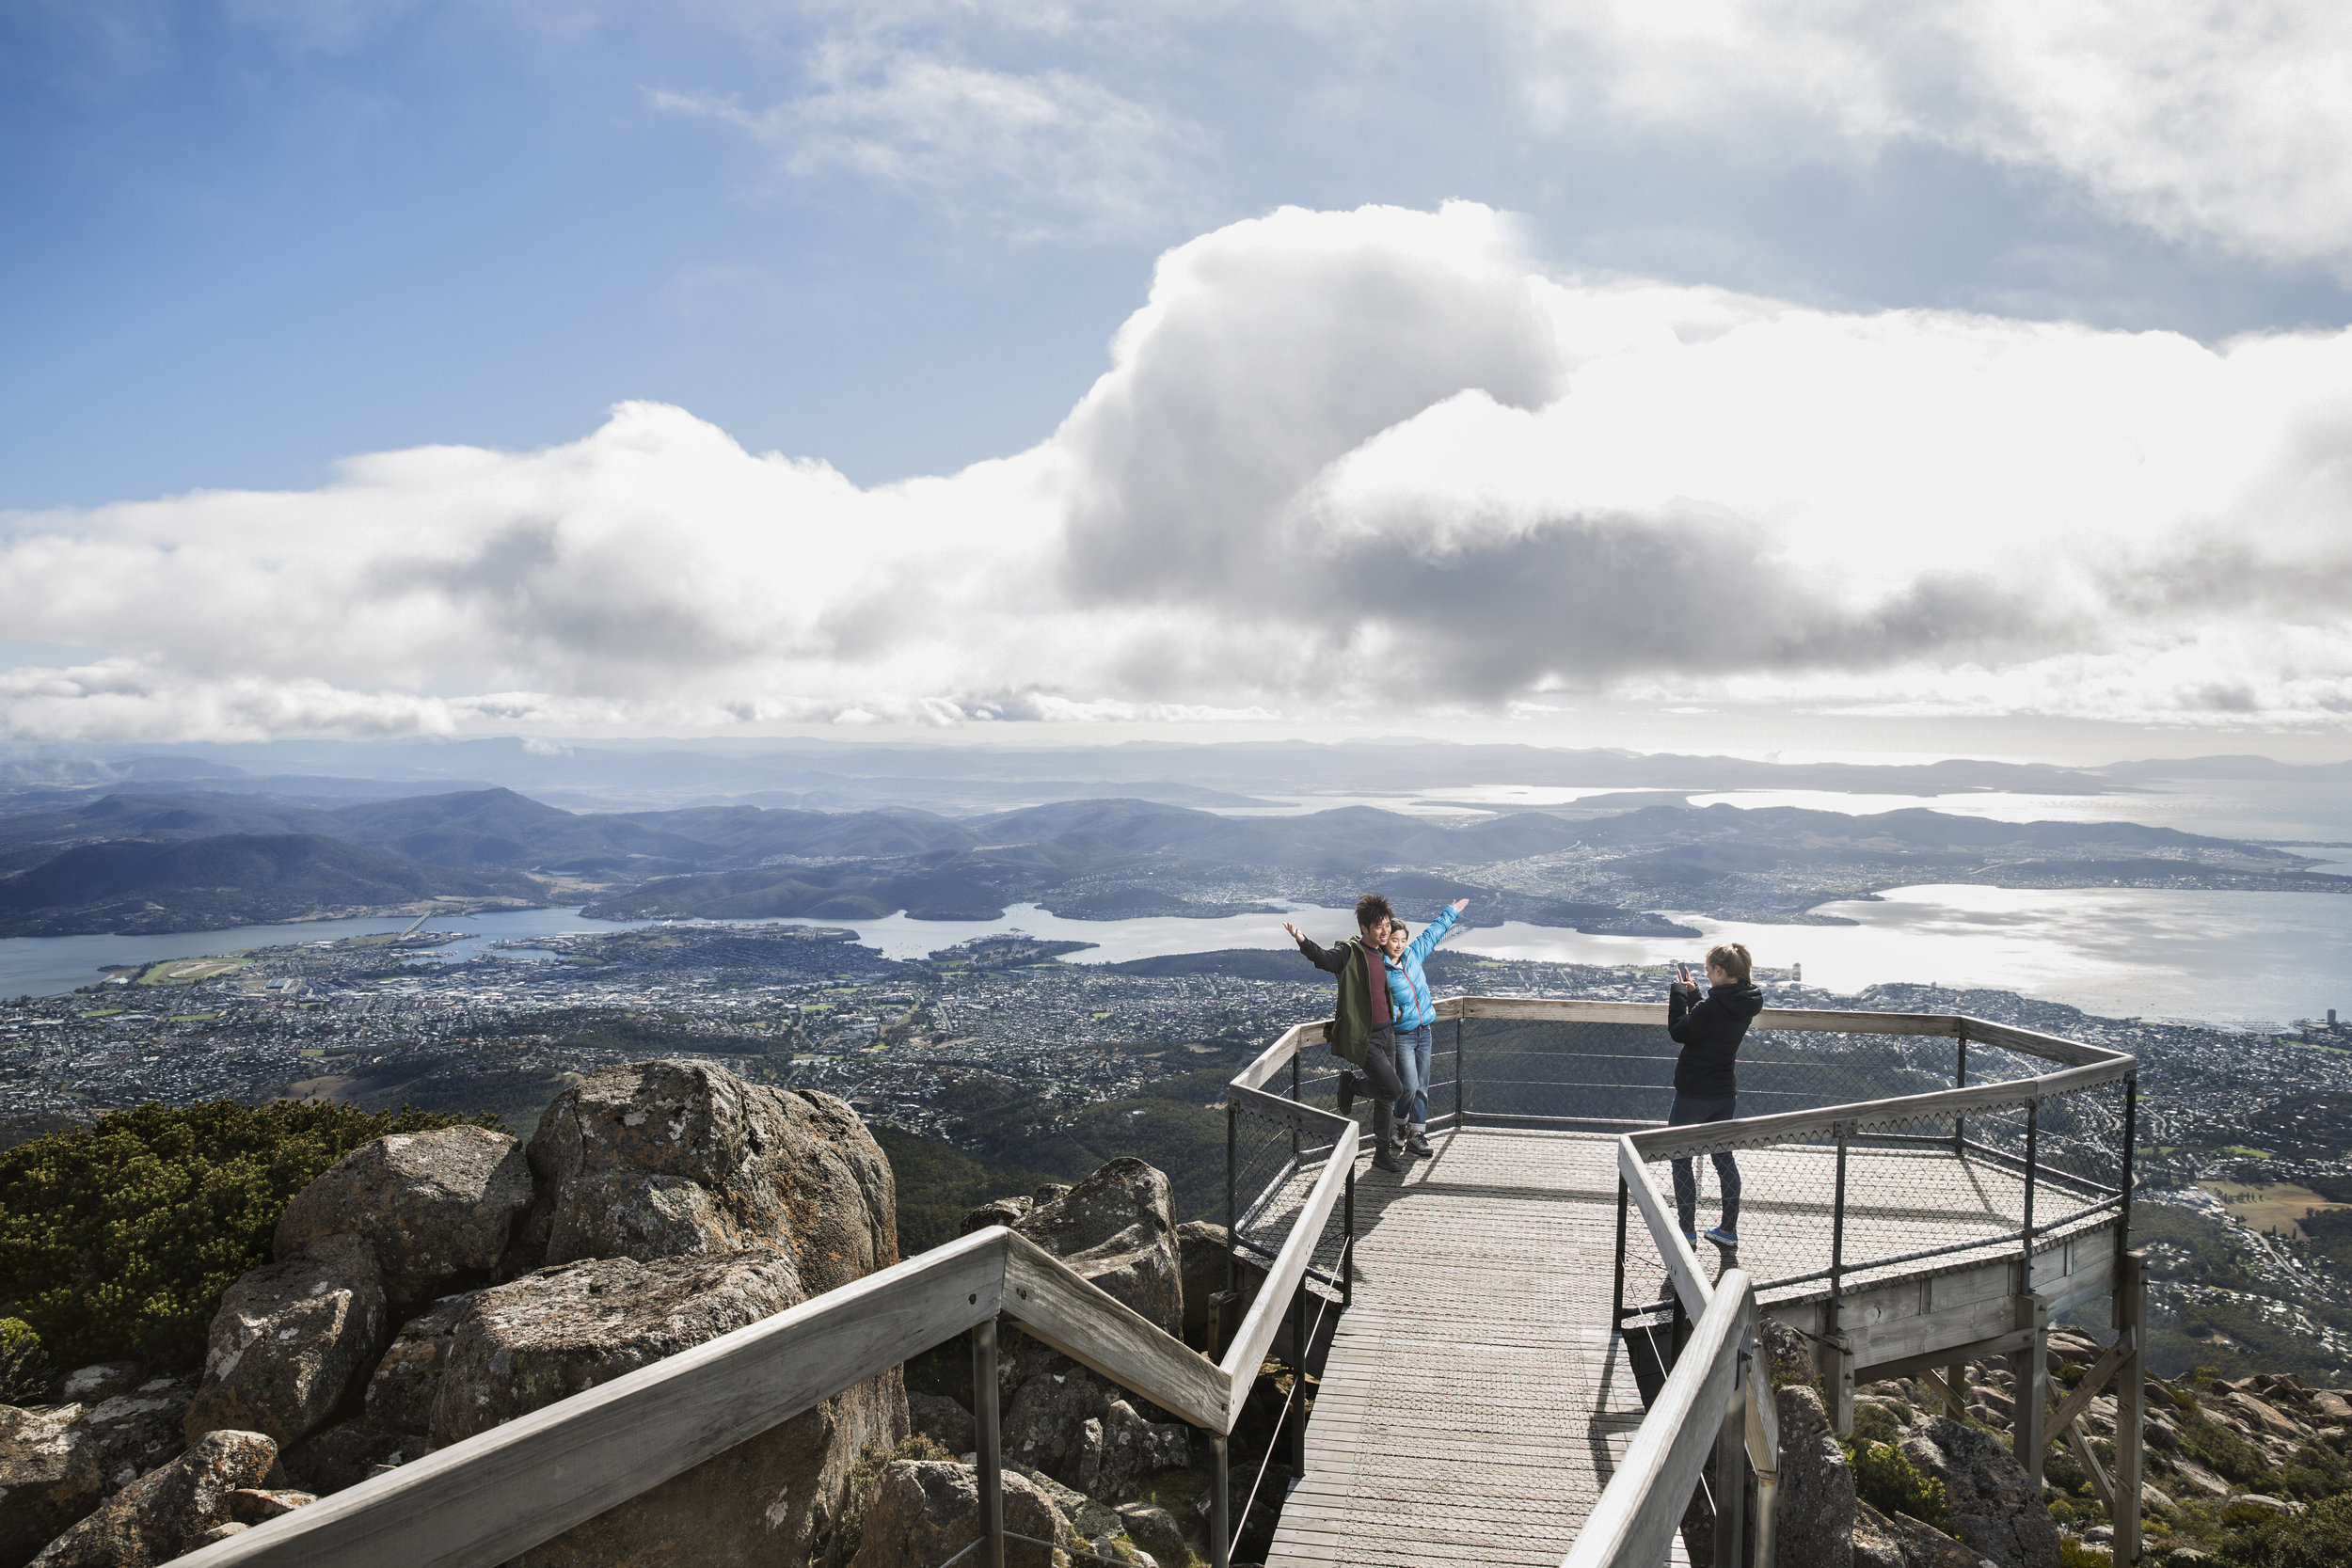 Hobart Attractions Full Day Tour $129.00pp - Mt Wellington - Bonorong Wildlife Sanctuary - Richmond Village - Wine & Cheese Tasting9:00am - 5:00pmNature - Wildlife - Heritage & Colonial - Souvenirs